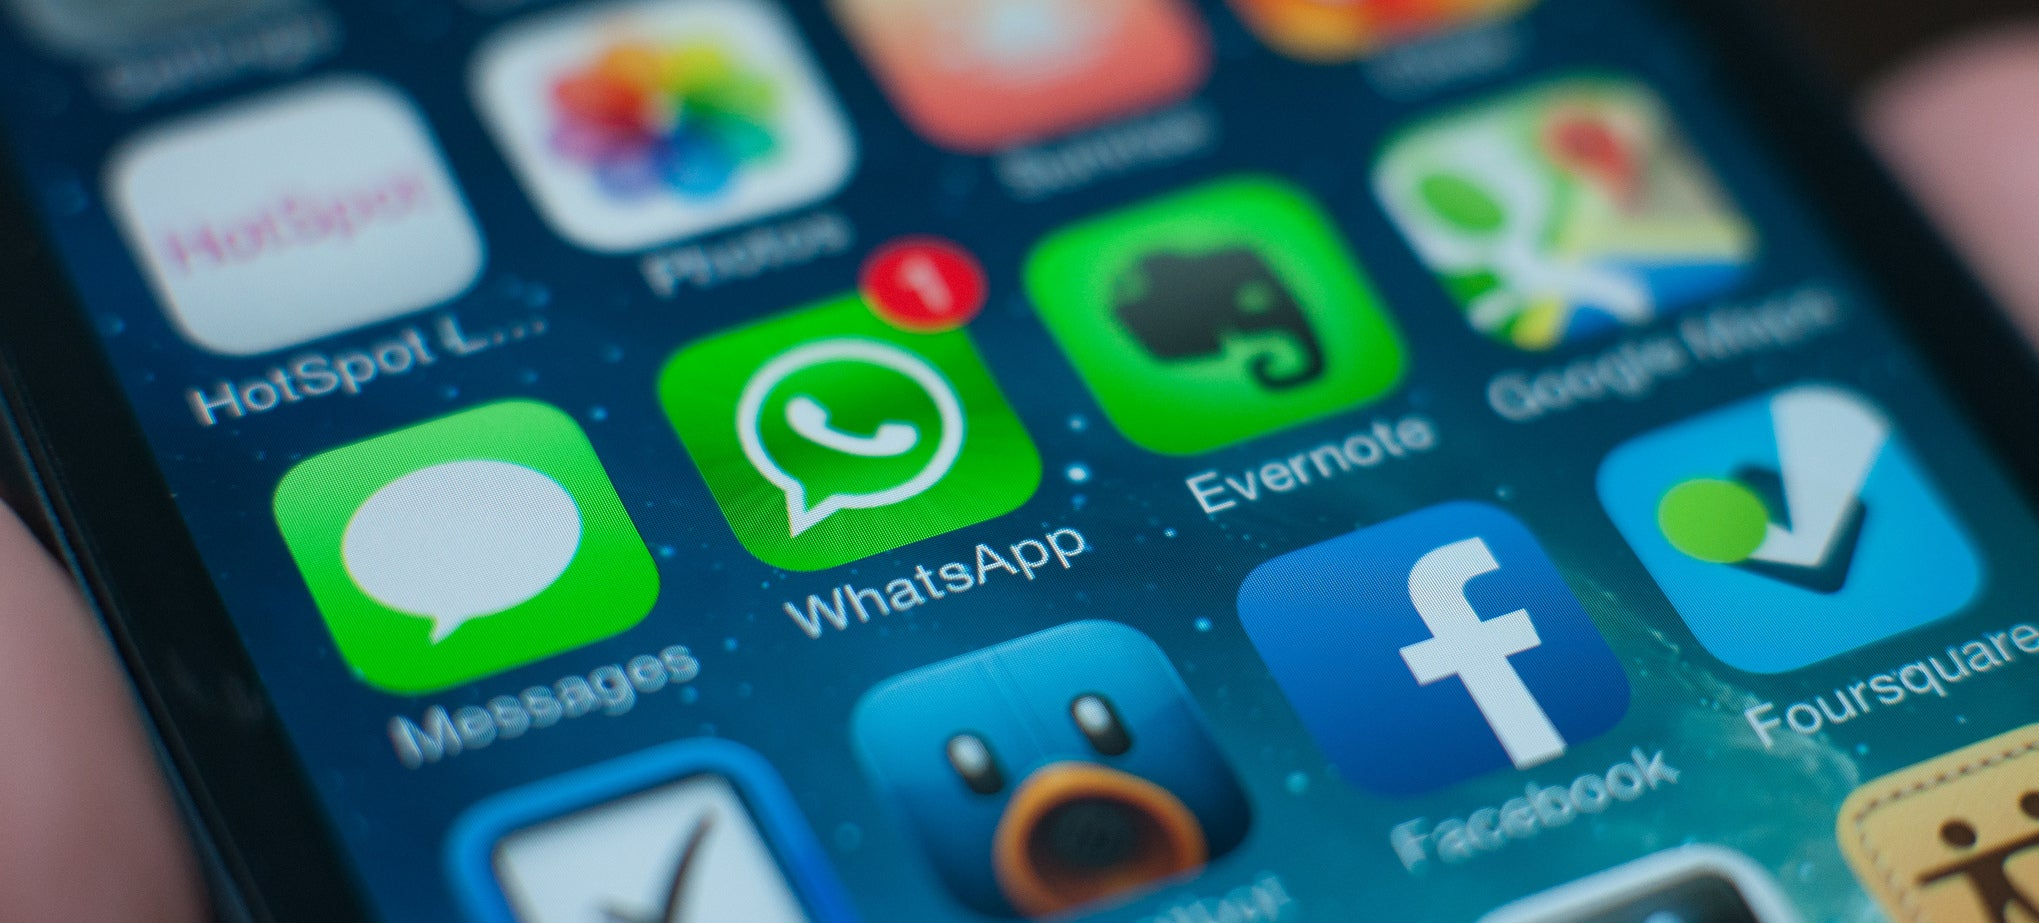 WhatsApp Is Axing Its $US1 ($1) Subscription Fee to Become Entirely Free